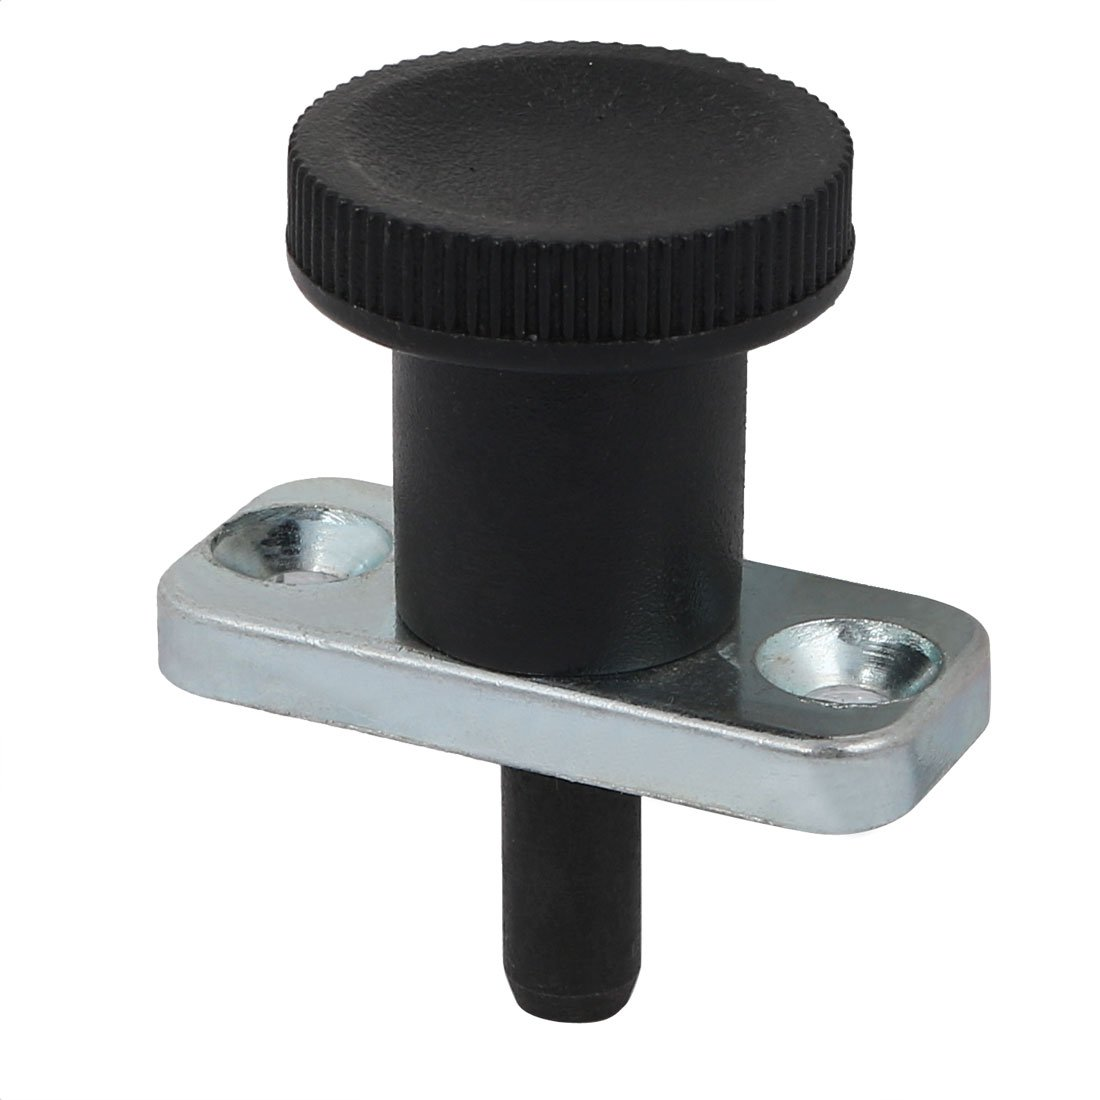 uxcell 8mm Pin Dia 18mm Pin Length Non Lock-Out Type Zinc Alloy Plate Mount Indexing Plunger